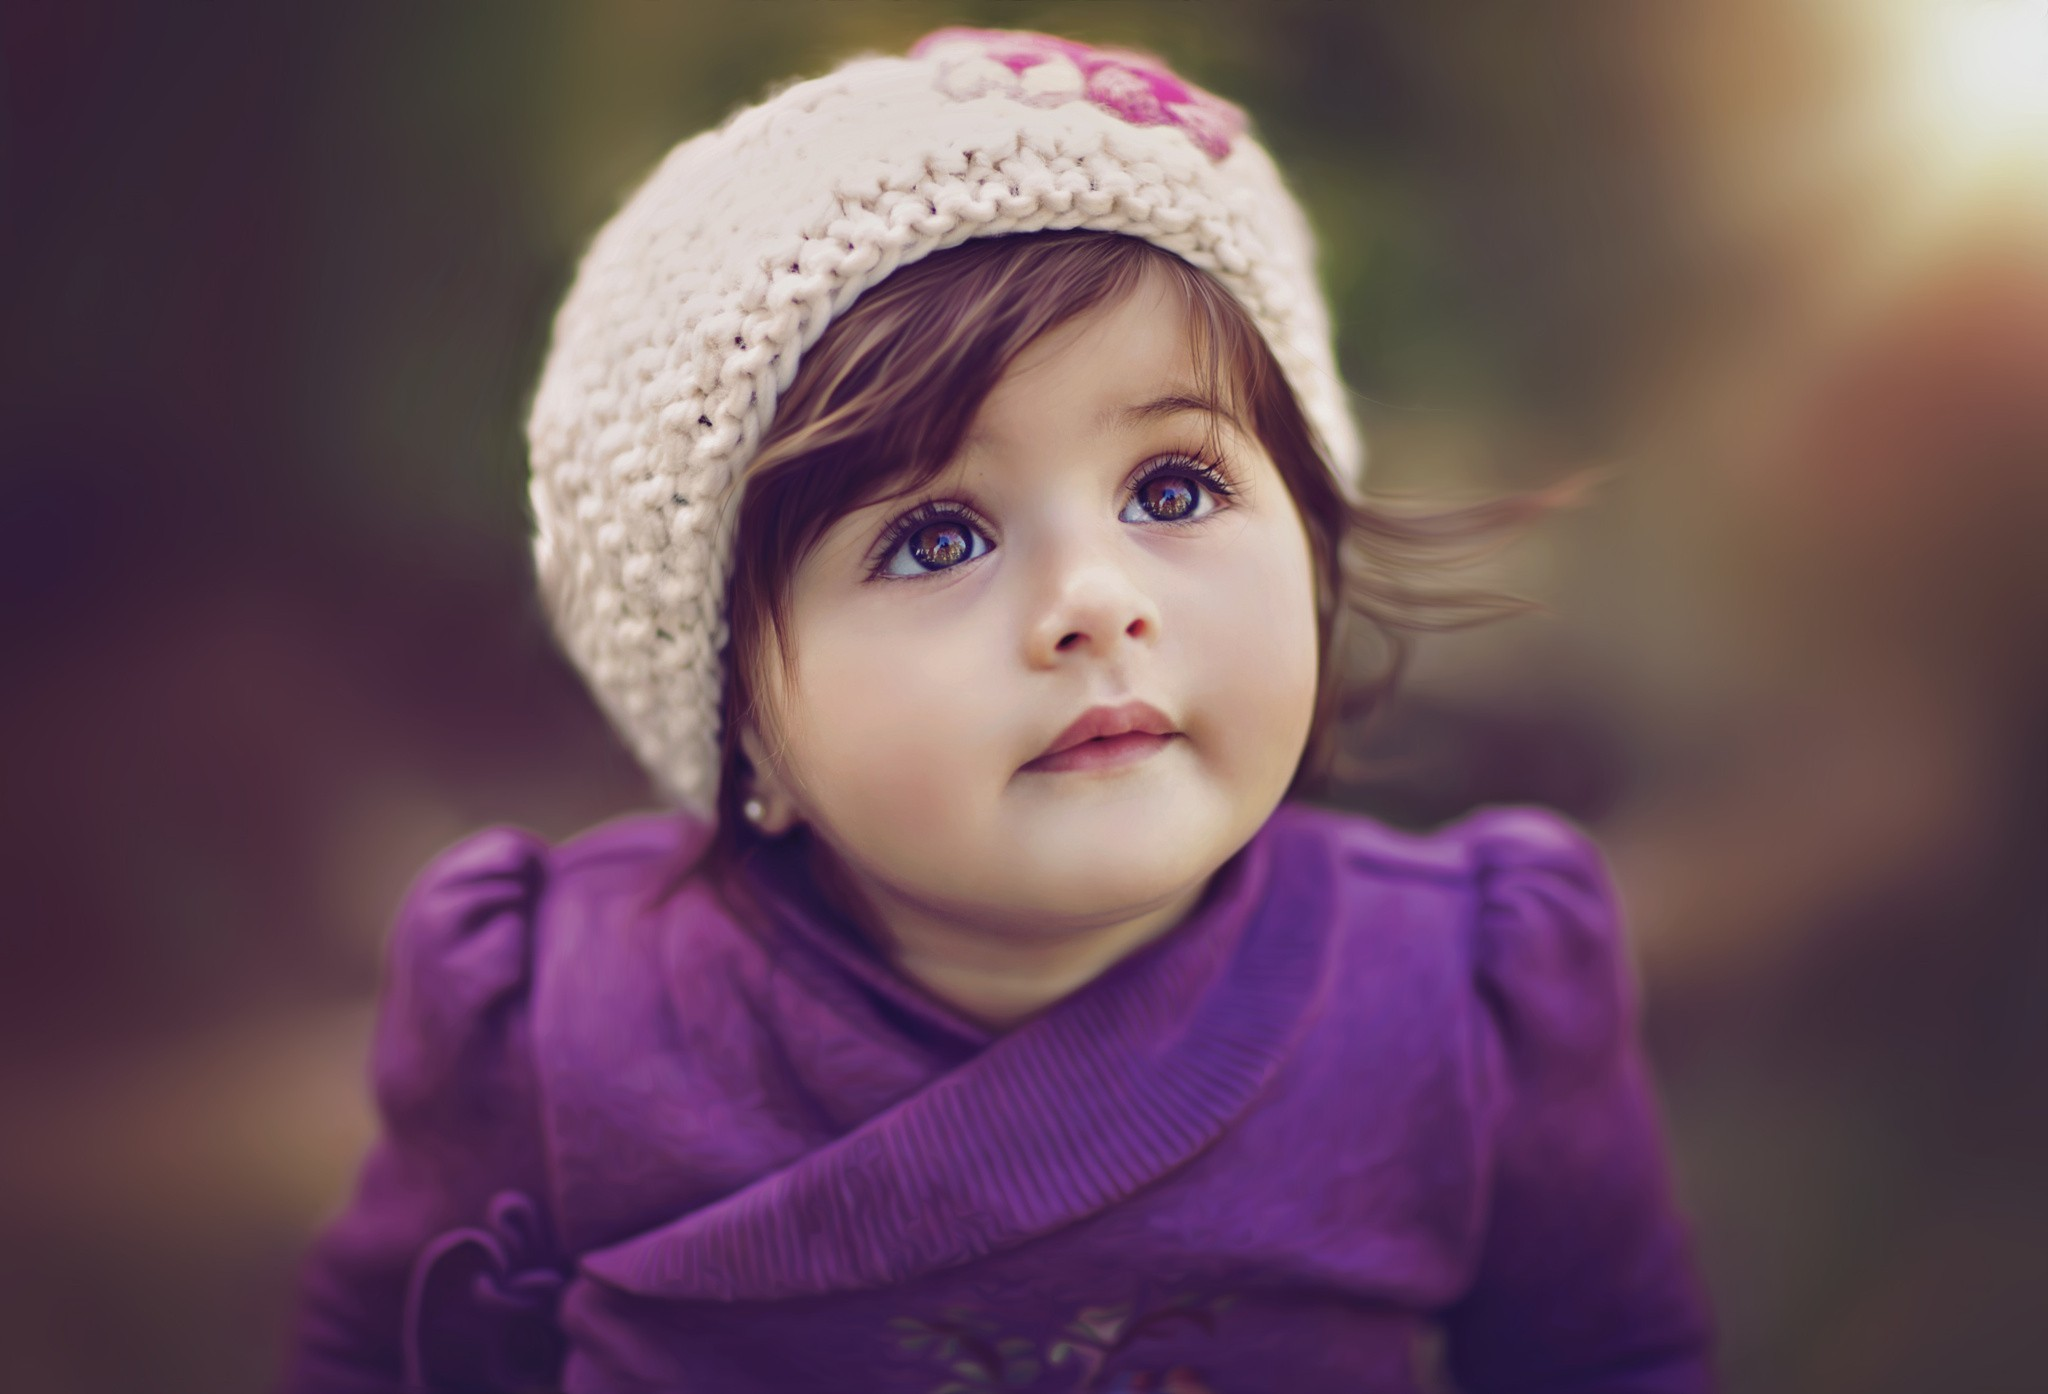 2048x1394 Cute Baby Girl Kids Wallpaper